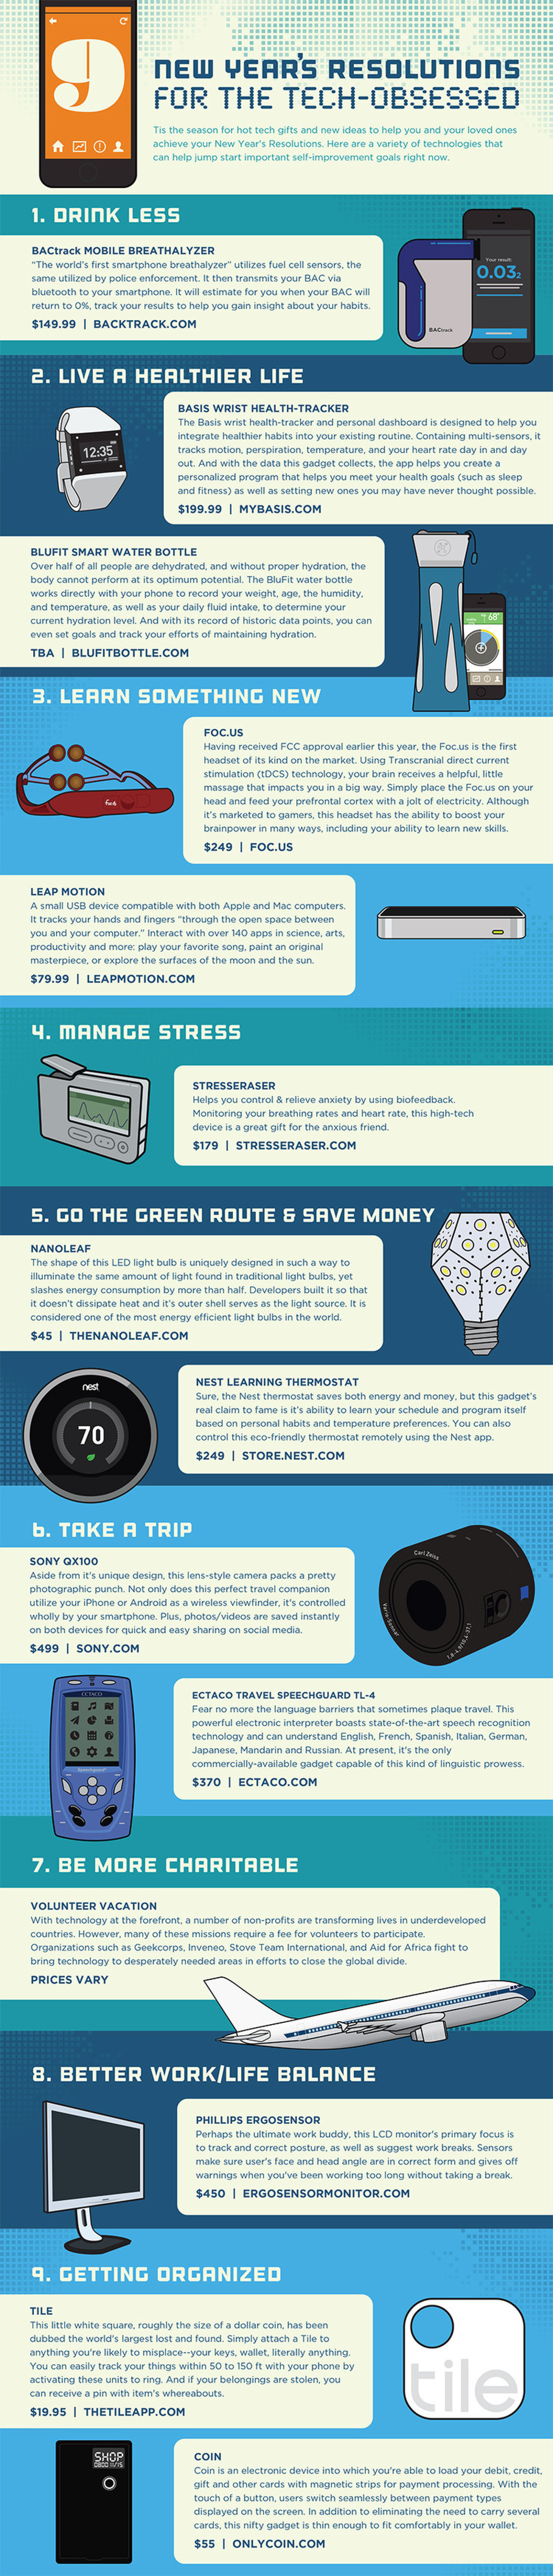 9 New Years Resolutions for the tech obsessed Infographic